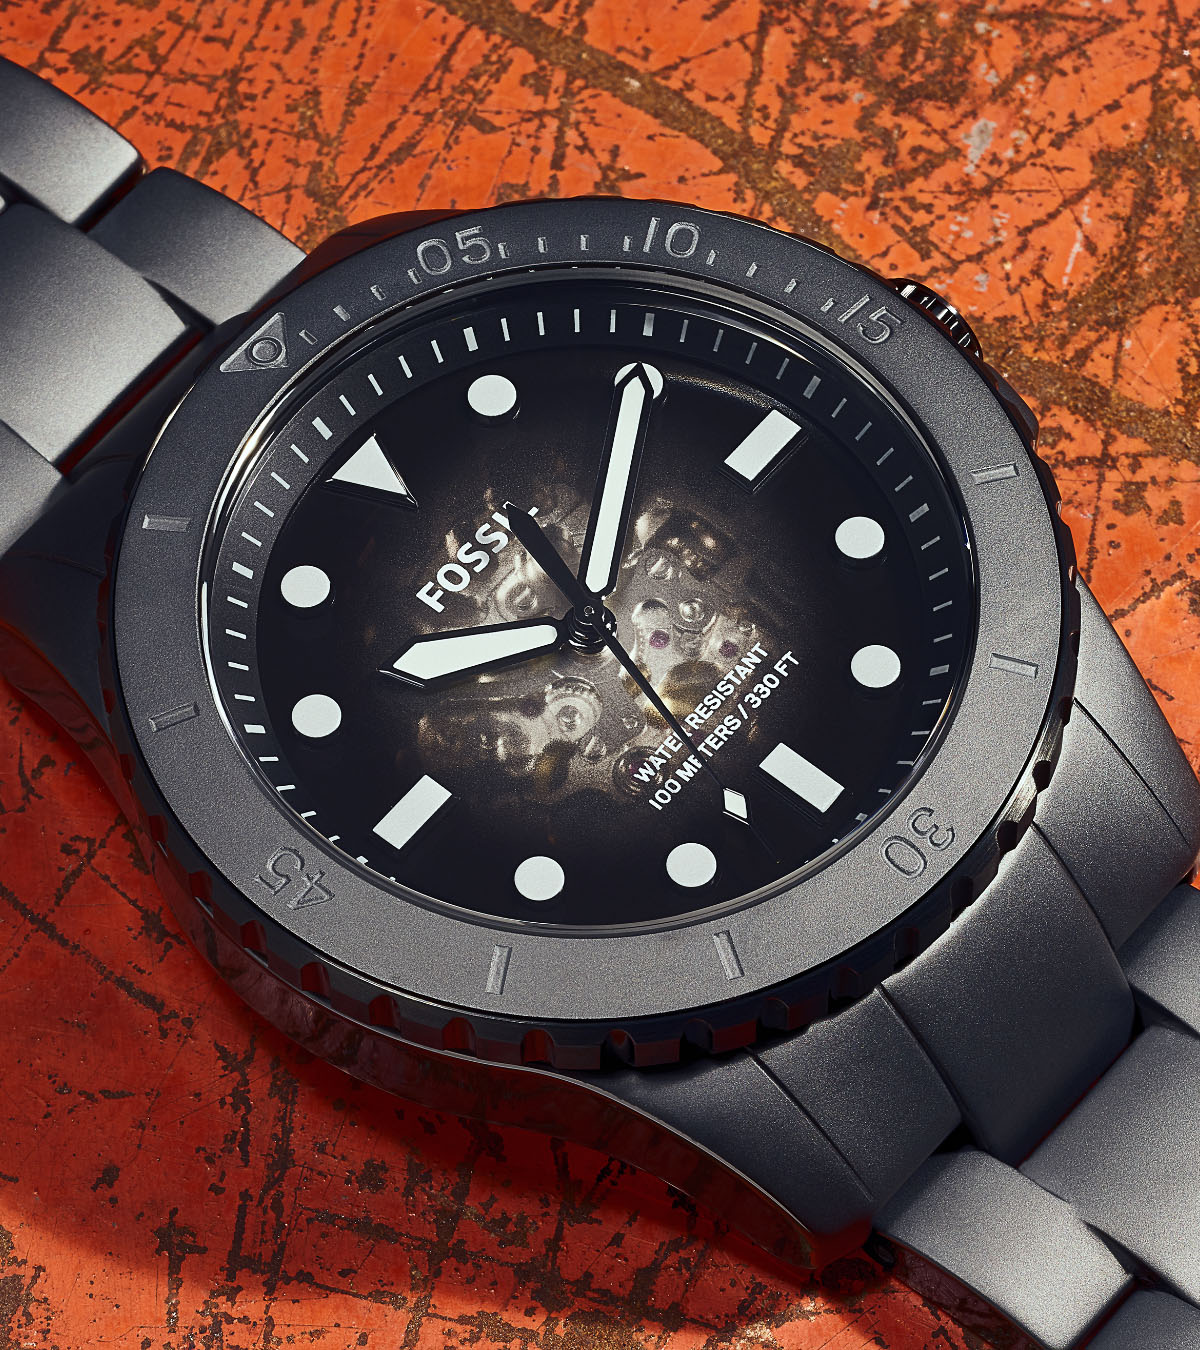 A black stainless steel FB-01 watch.